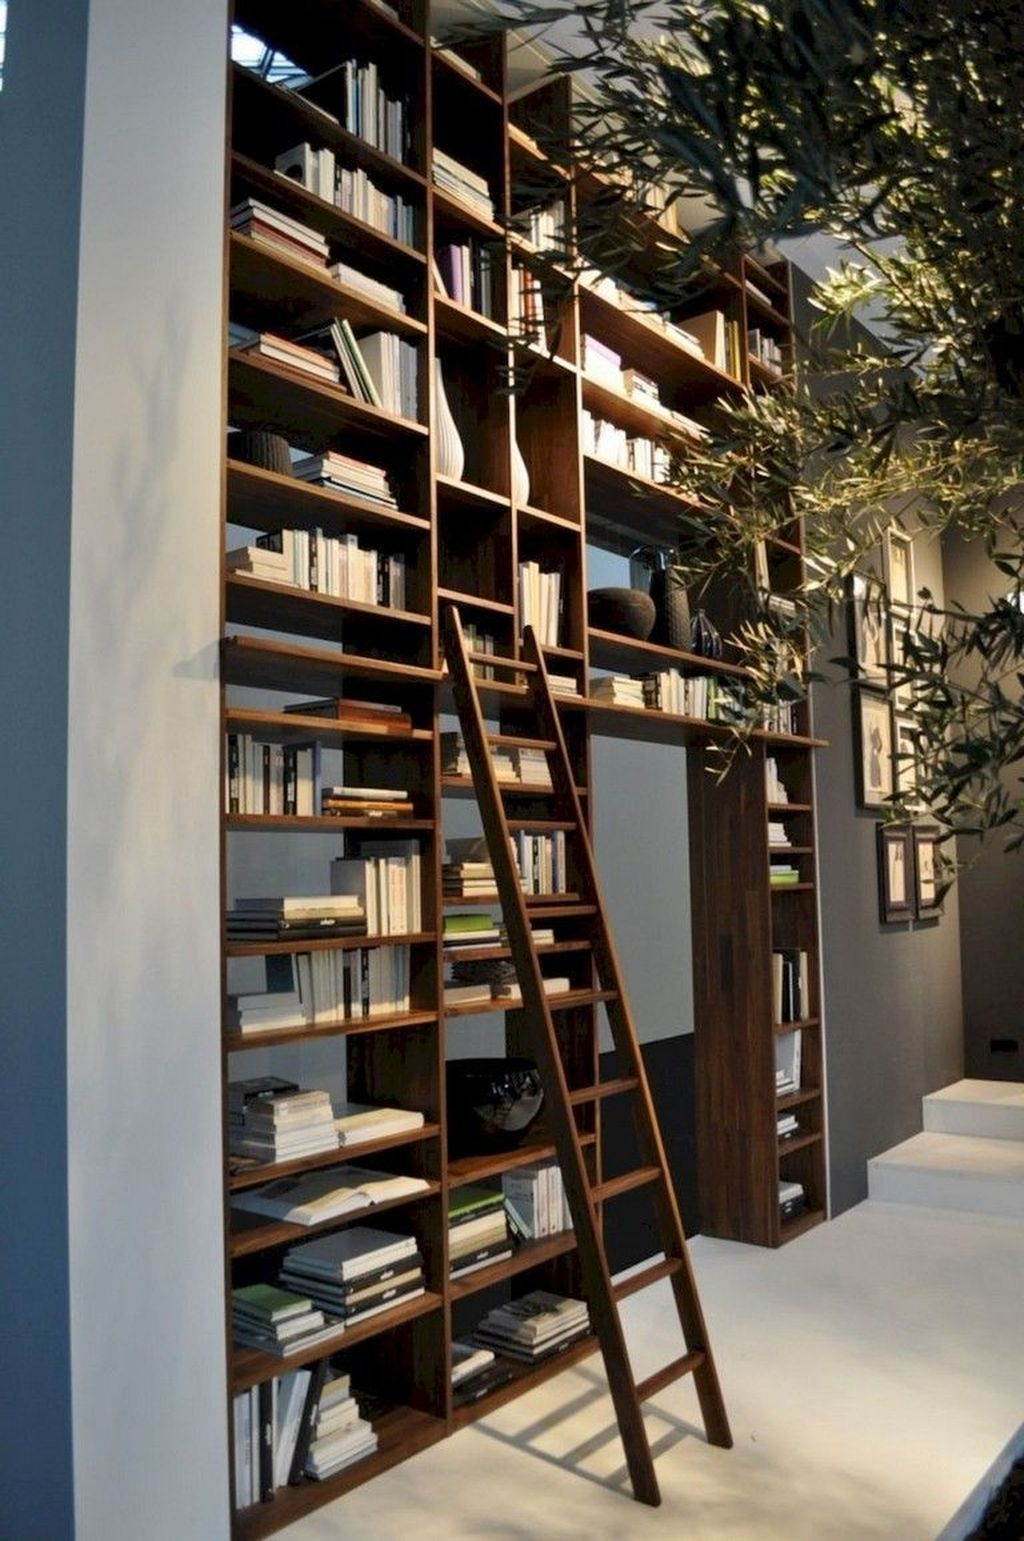 Smart Library Design Ideas For Home To Add To Your List 15